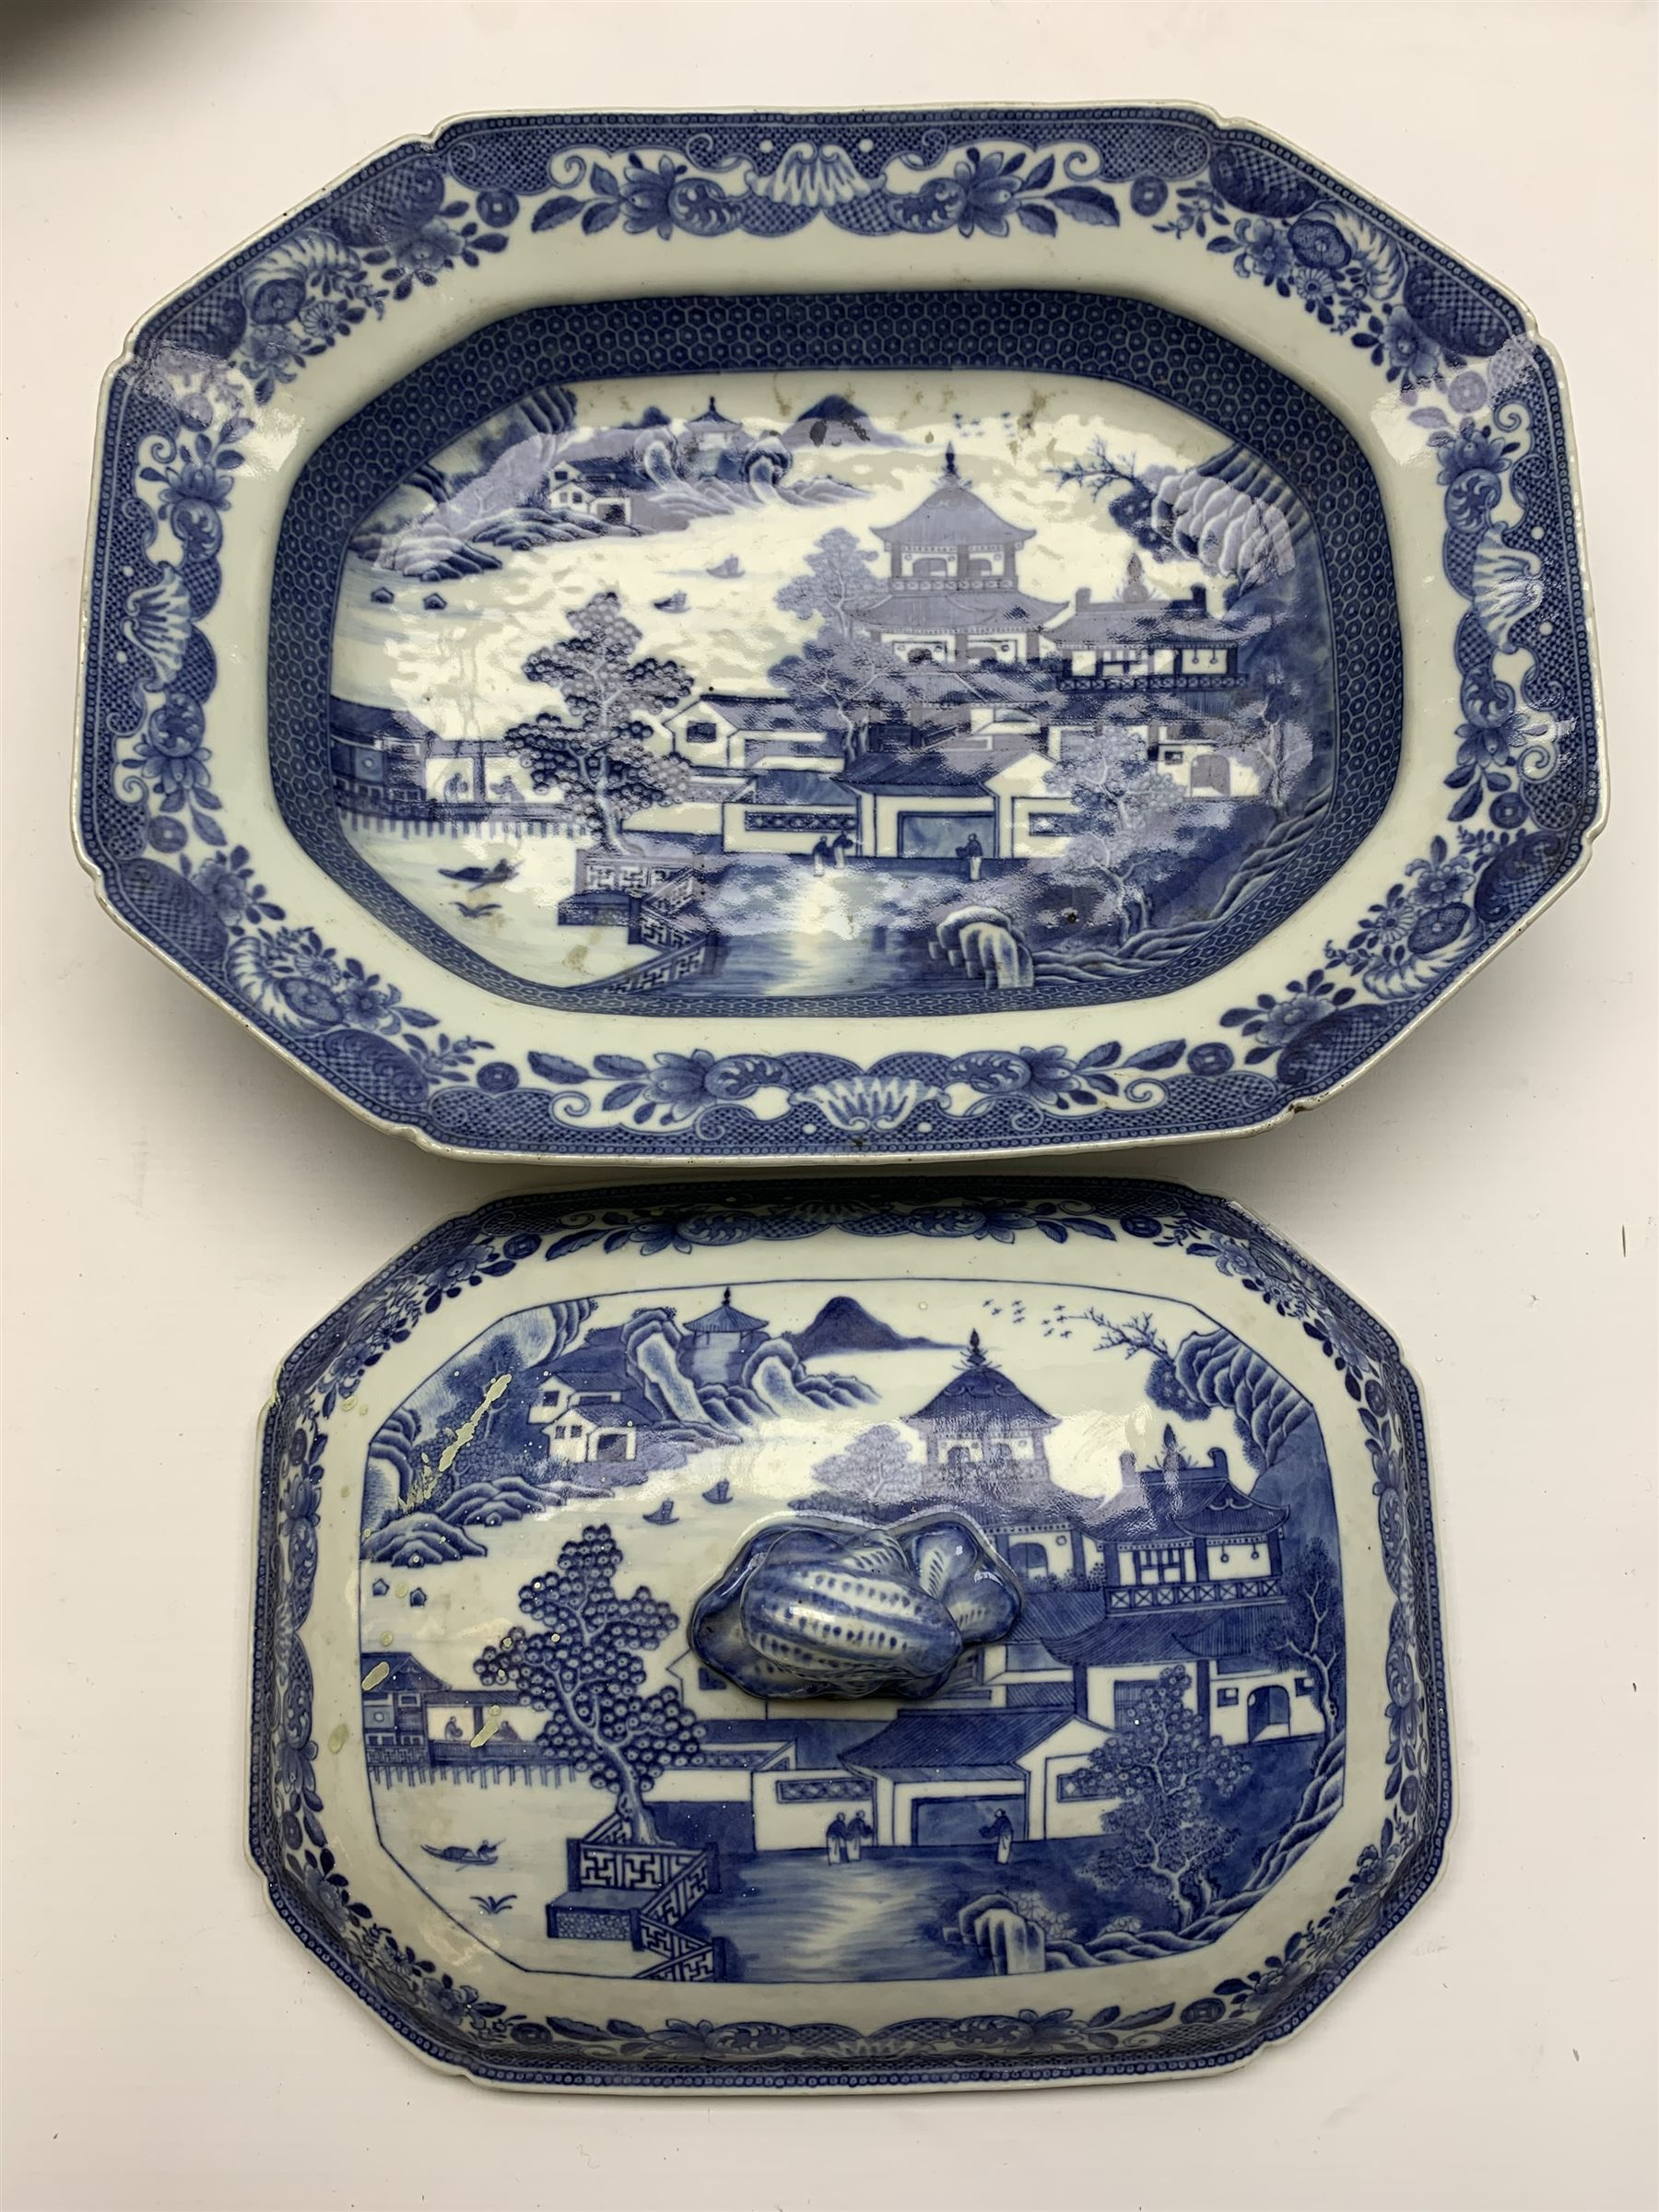 Late 18th/early 19th century Chinese export blue and white forty seven piece part dinner service - Image 20 of 20